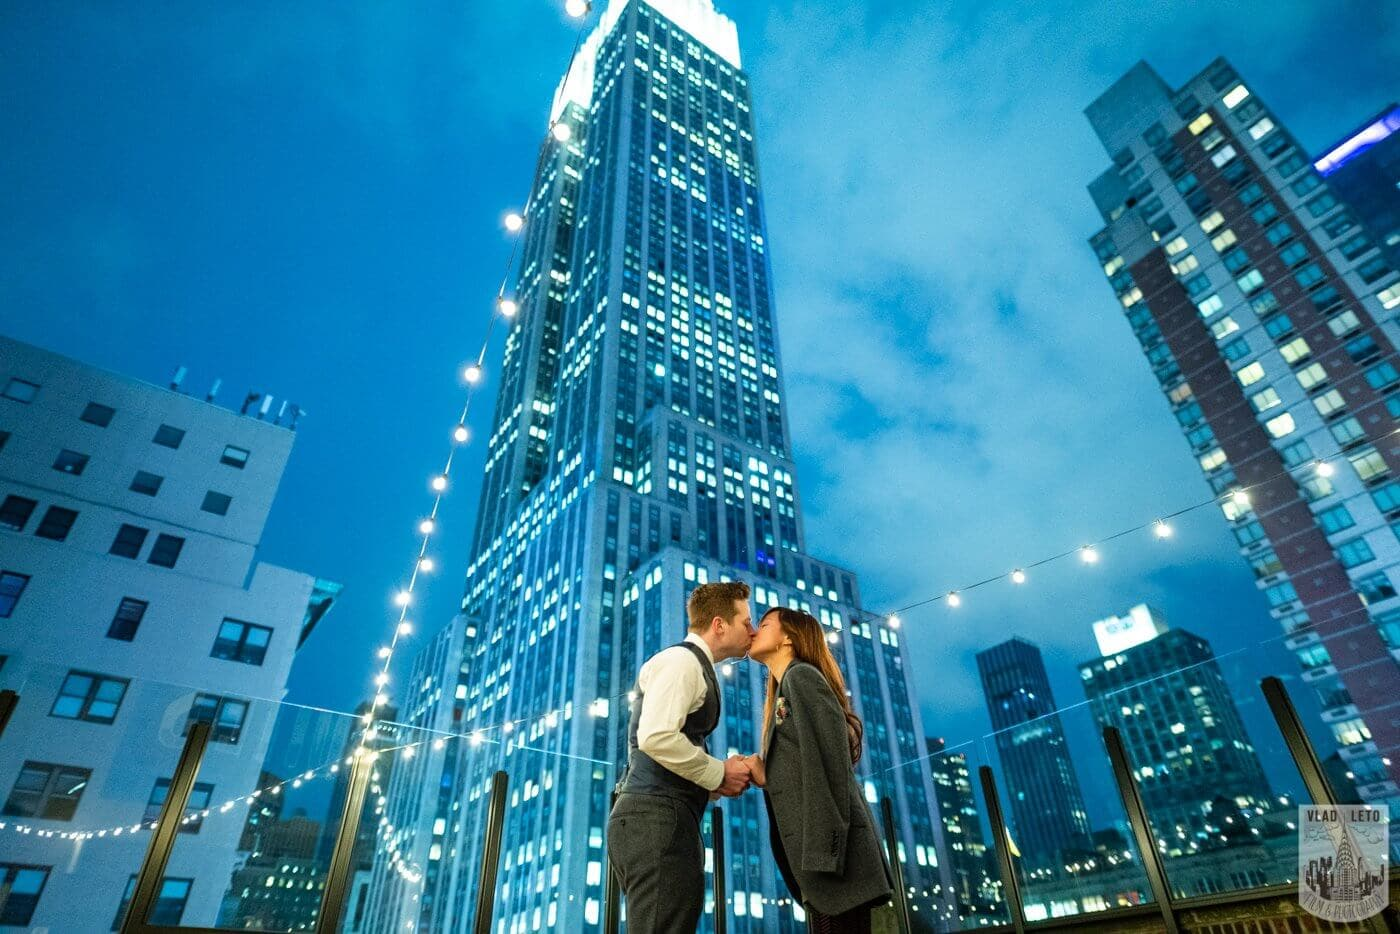 Photo 3 Wedding proposal on a private rooftop with Empire State building view.   VladLeto